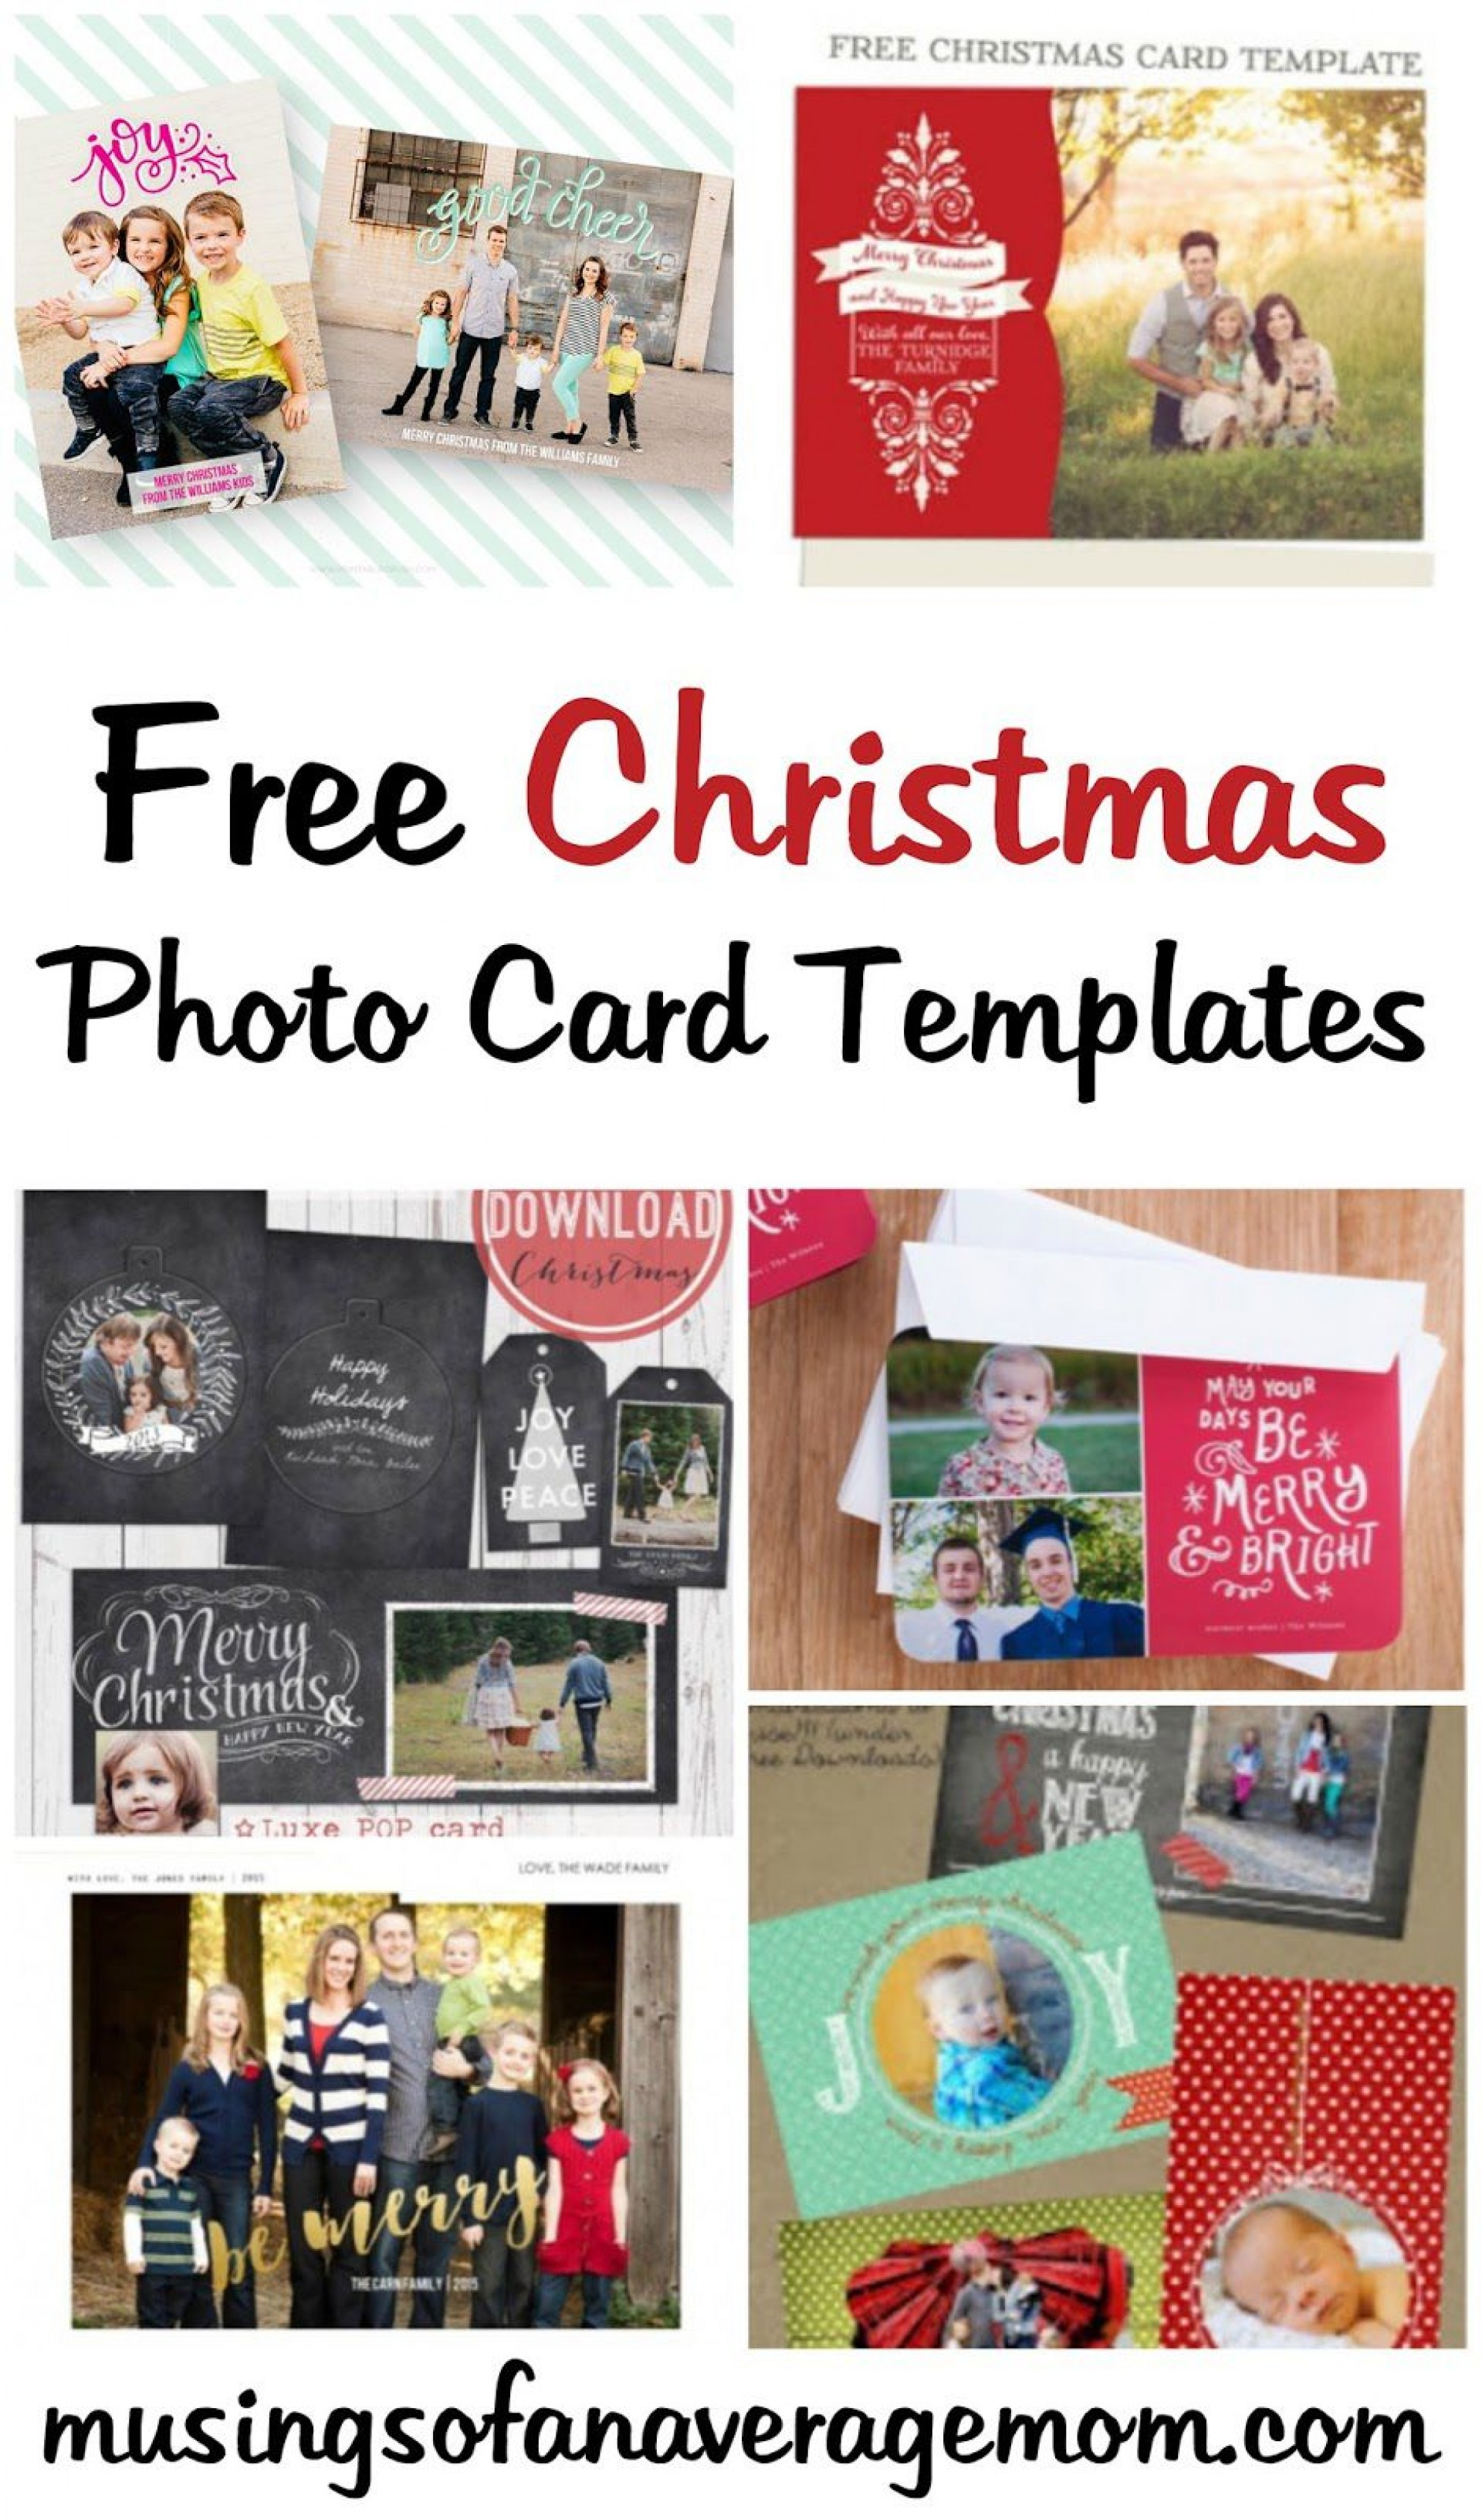 007 Beautiful Free Photo Christma Card Template Concept  Templates For Photoshop Online1920